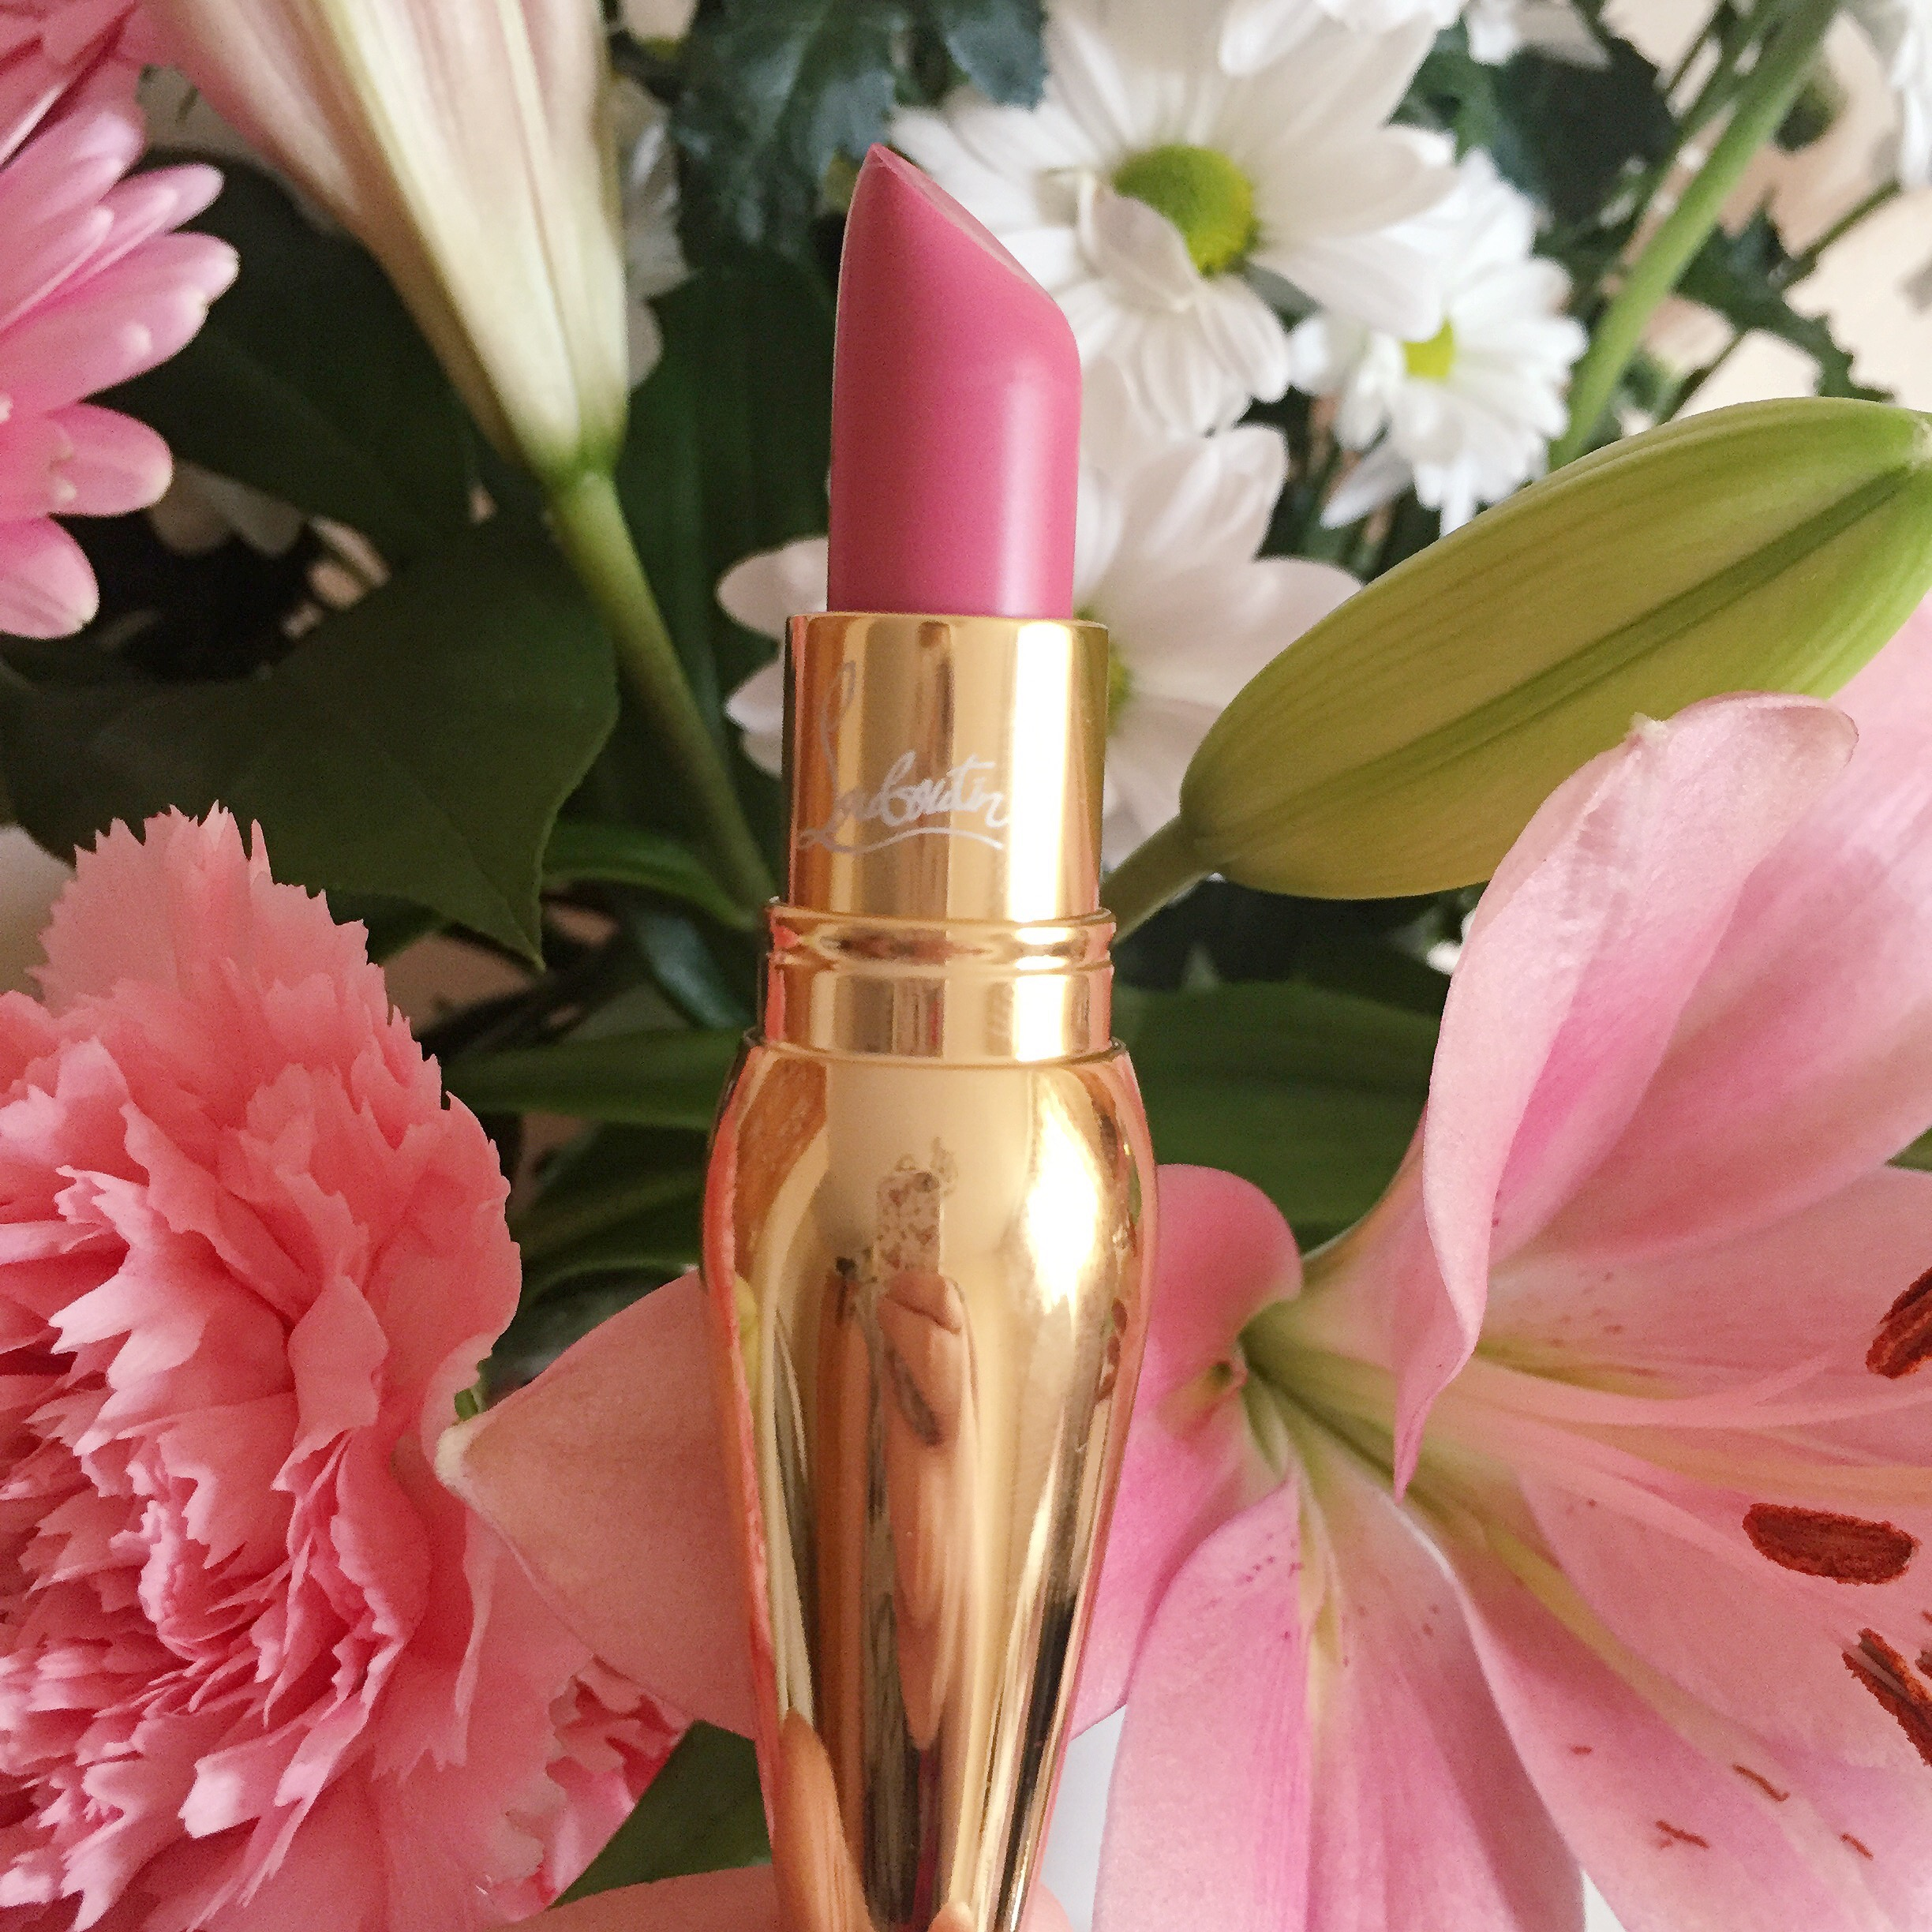 Christian Louboutin Lipstick In Bikini Swatches And Review